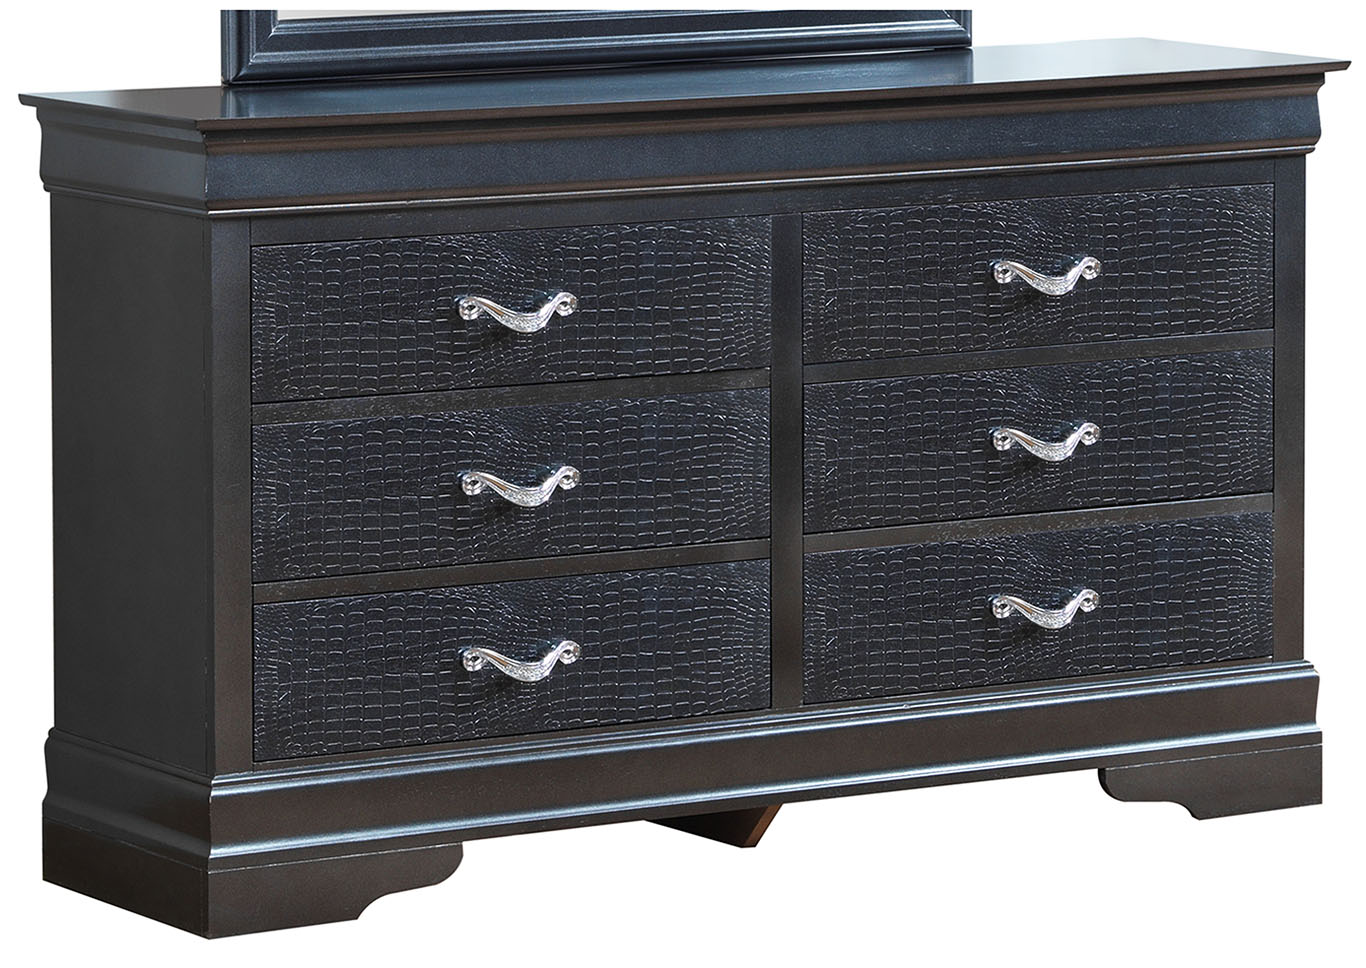 Charcoal 6 Drawer Dresser,Glory Furniture